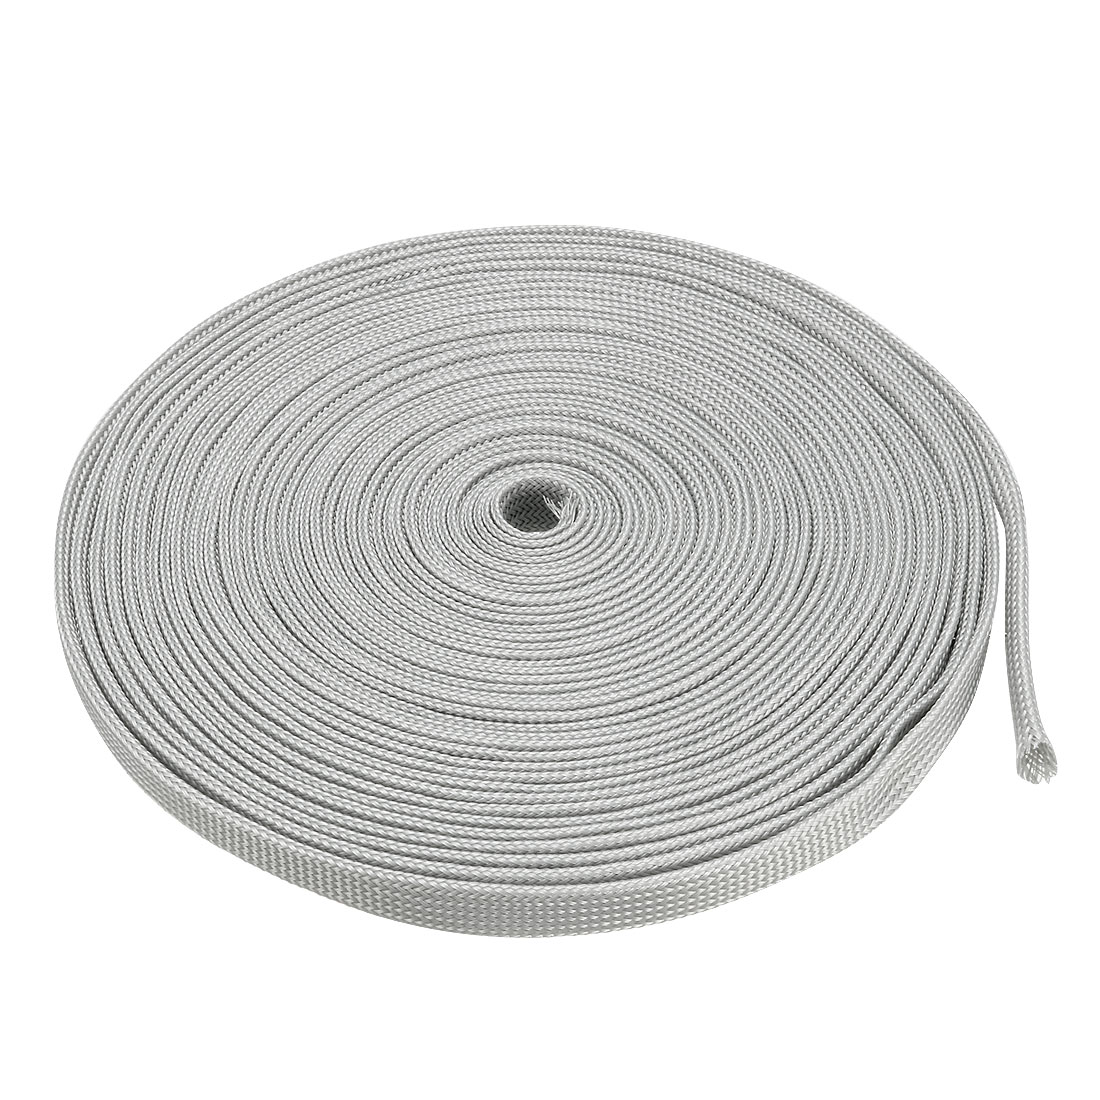 12mm Dia Tight Braided PET Expandable Sleeving Cable Wire Wrap Sheath Gray 10M